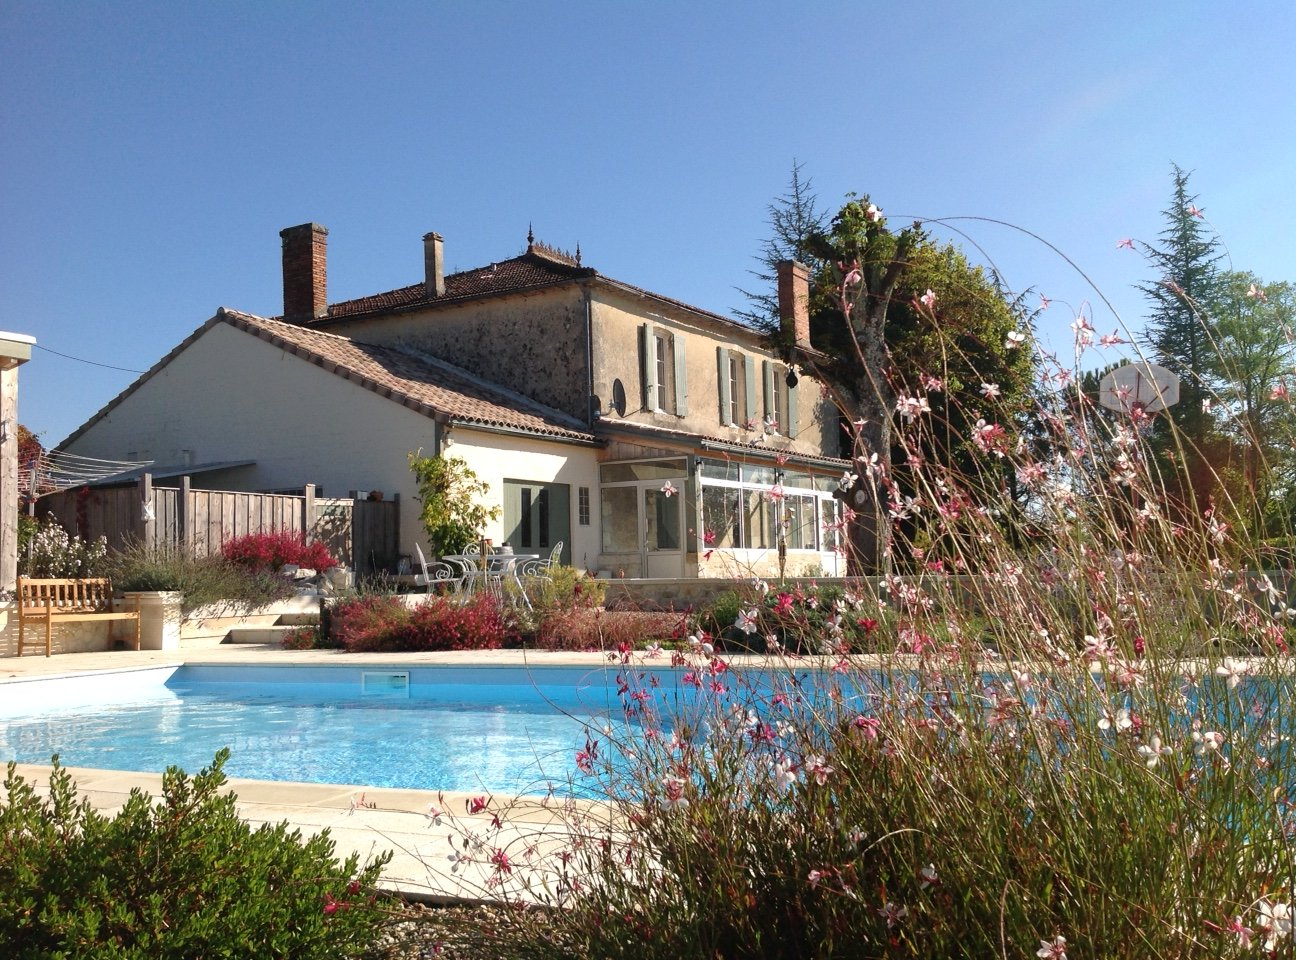 Fabulous Maison de Maitre in immaculate condition - viewing essential!